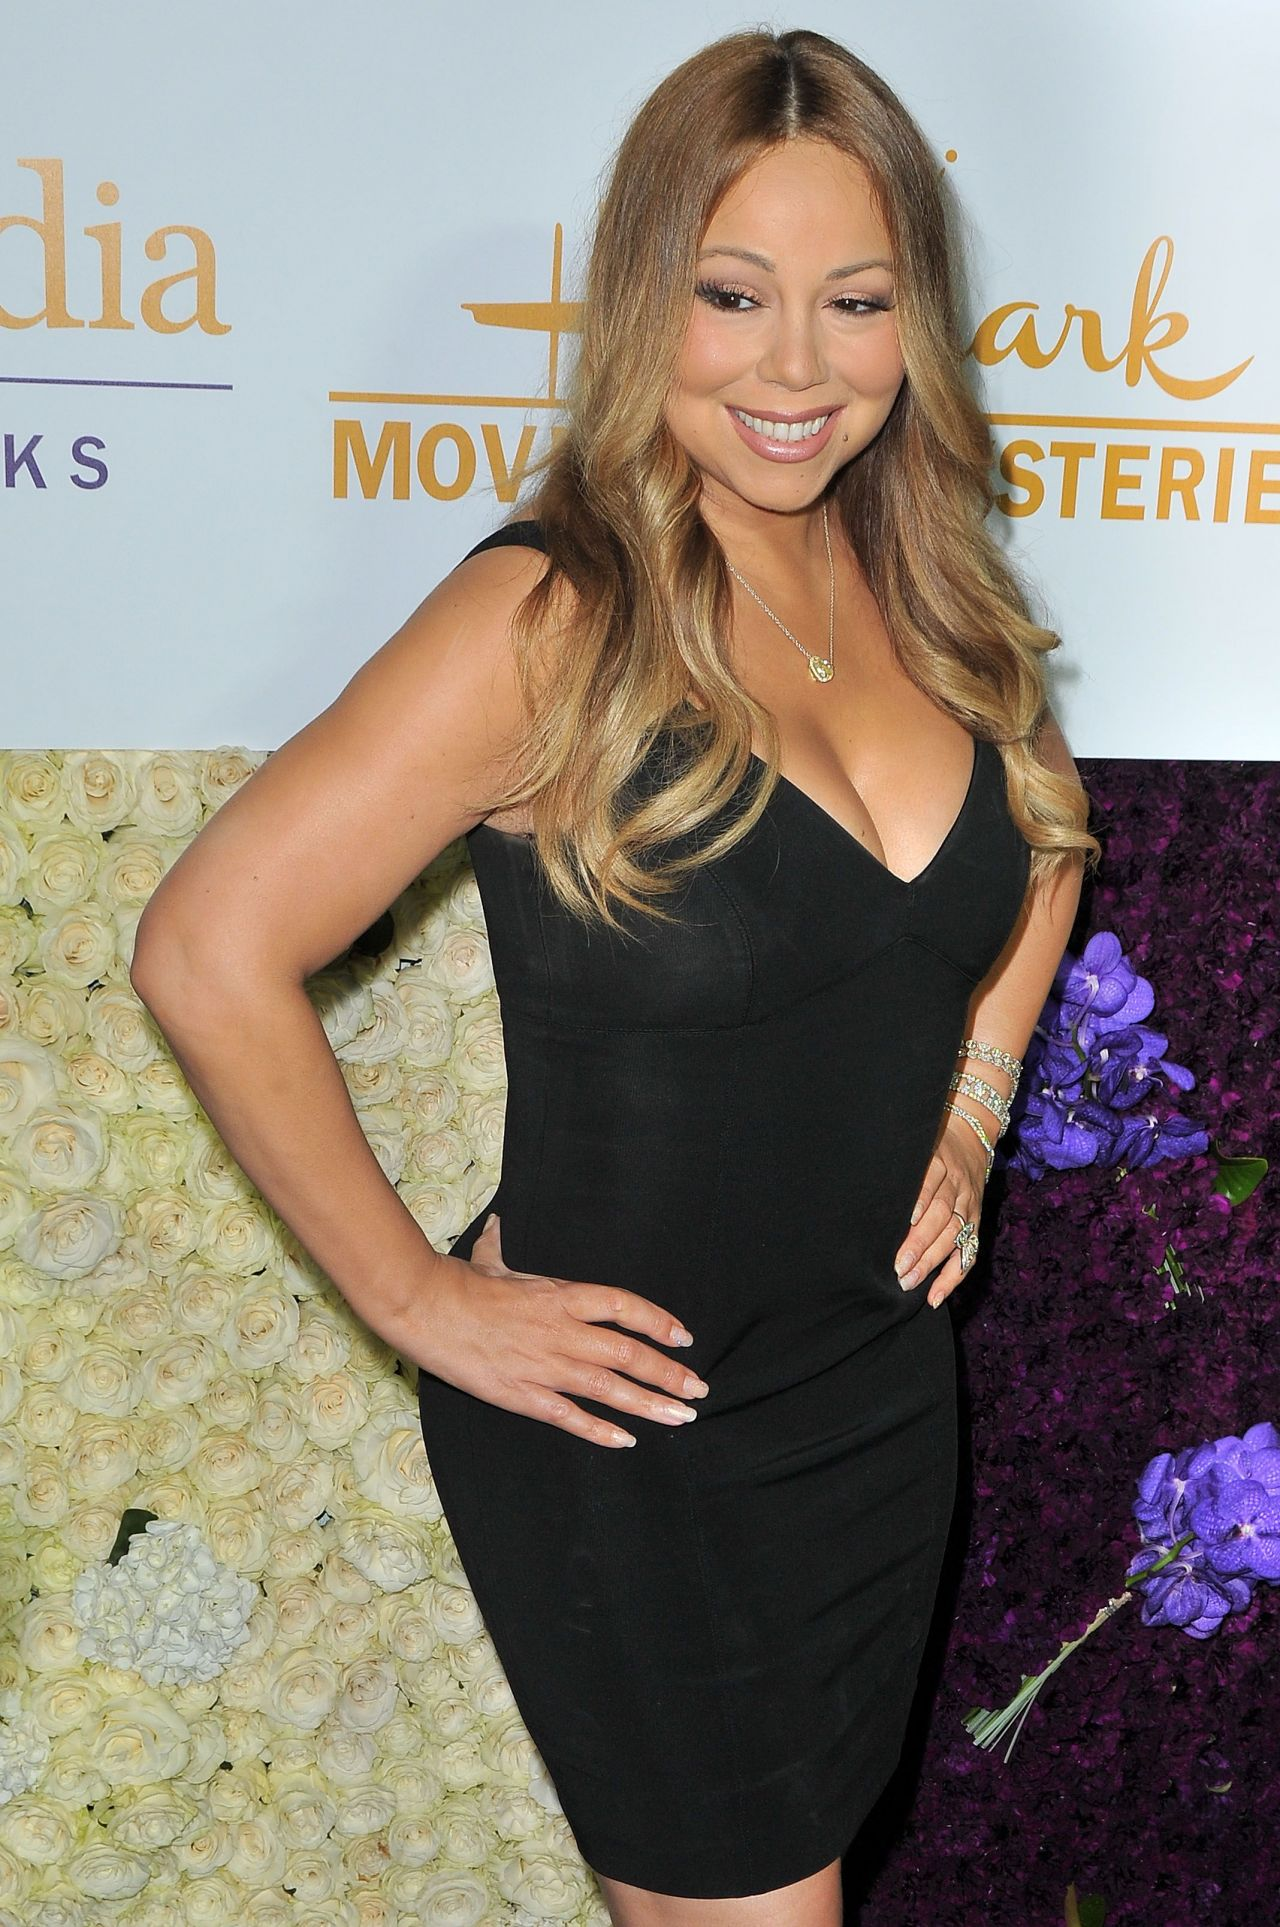 Mariah Carey Hallmark Channel 2015 Summer Tca Tour Event